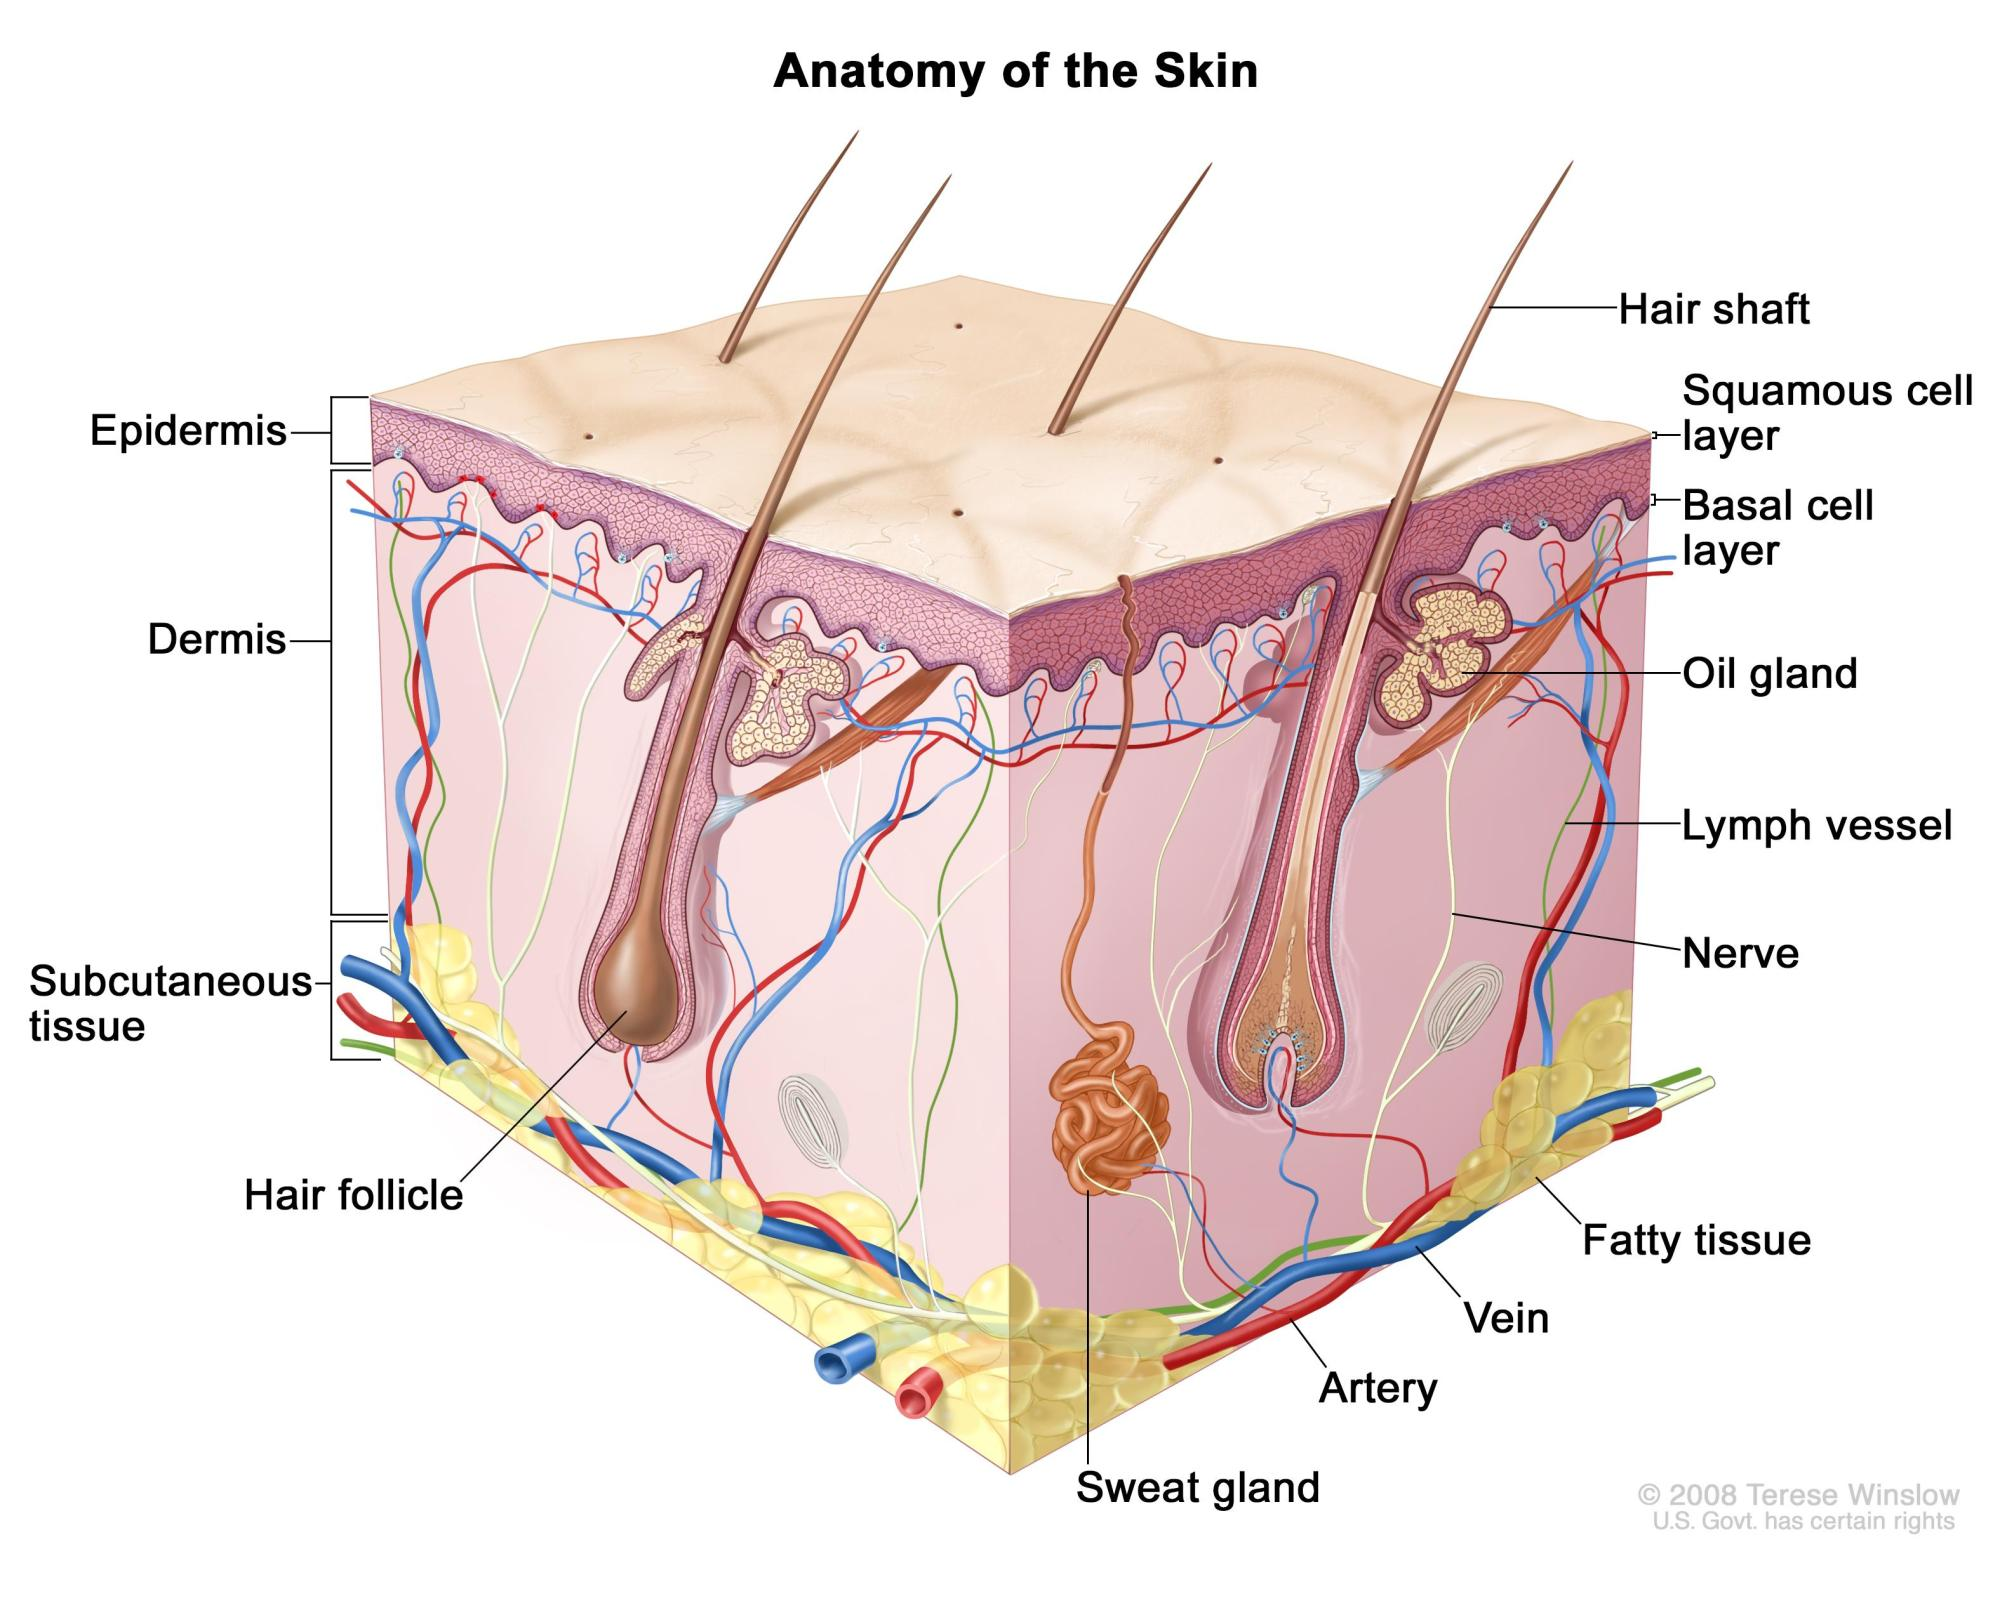 hight resolution of anatomy of the skin showing the epidermis including the squamous cell and basal cell layers dermis subcutaneous tissue and other parts of the skin